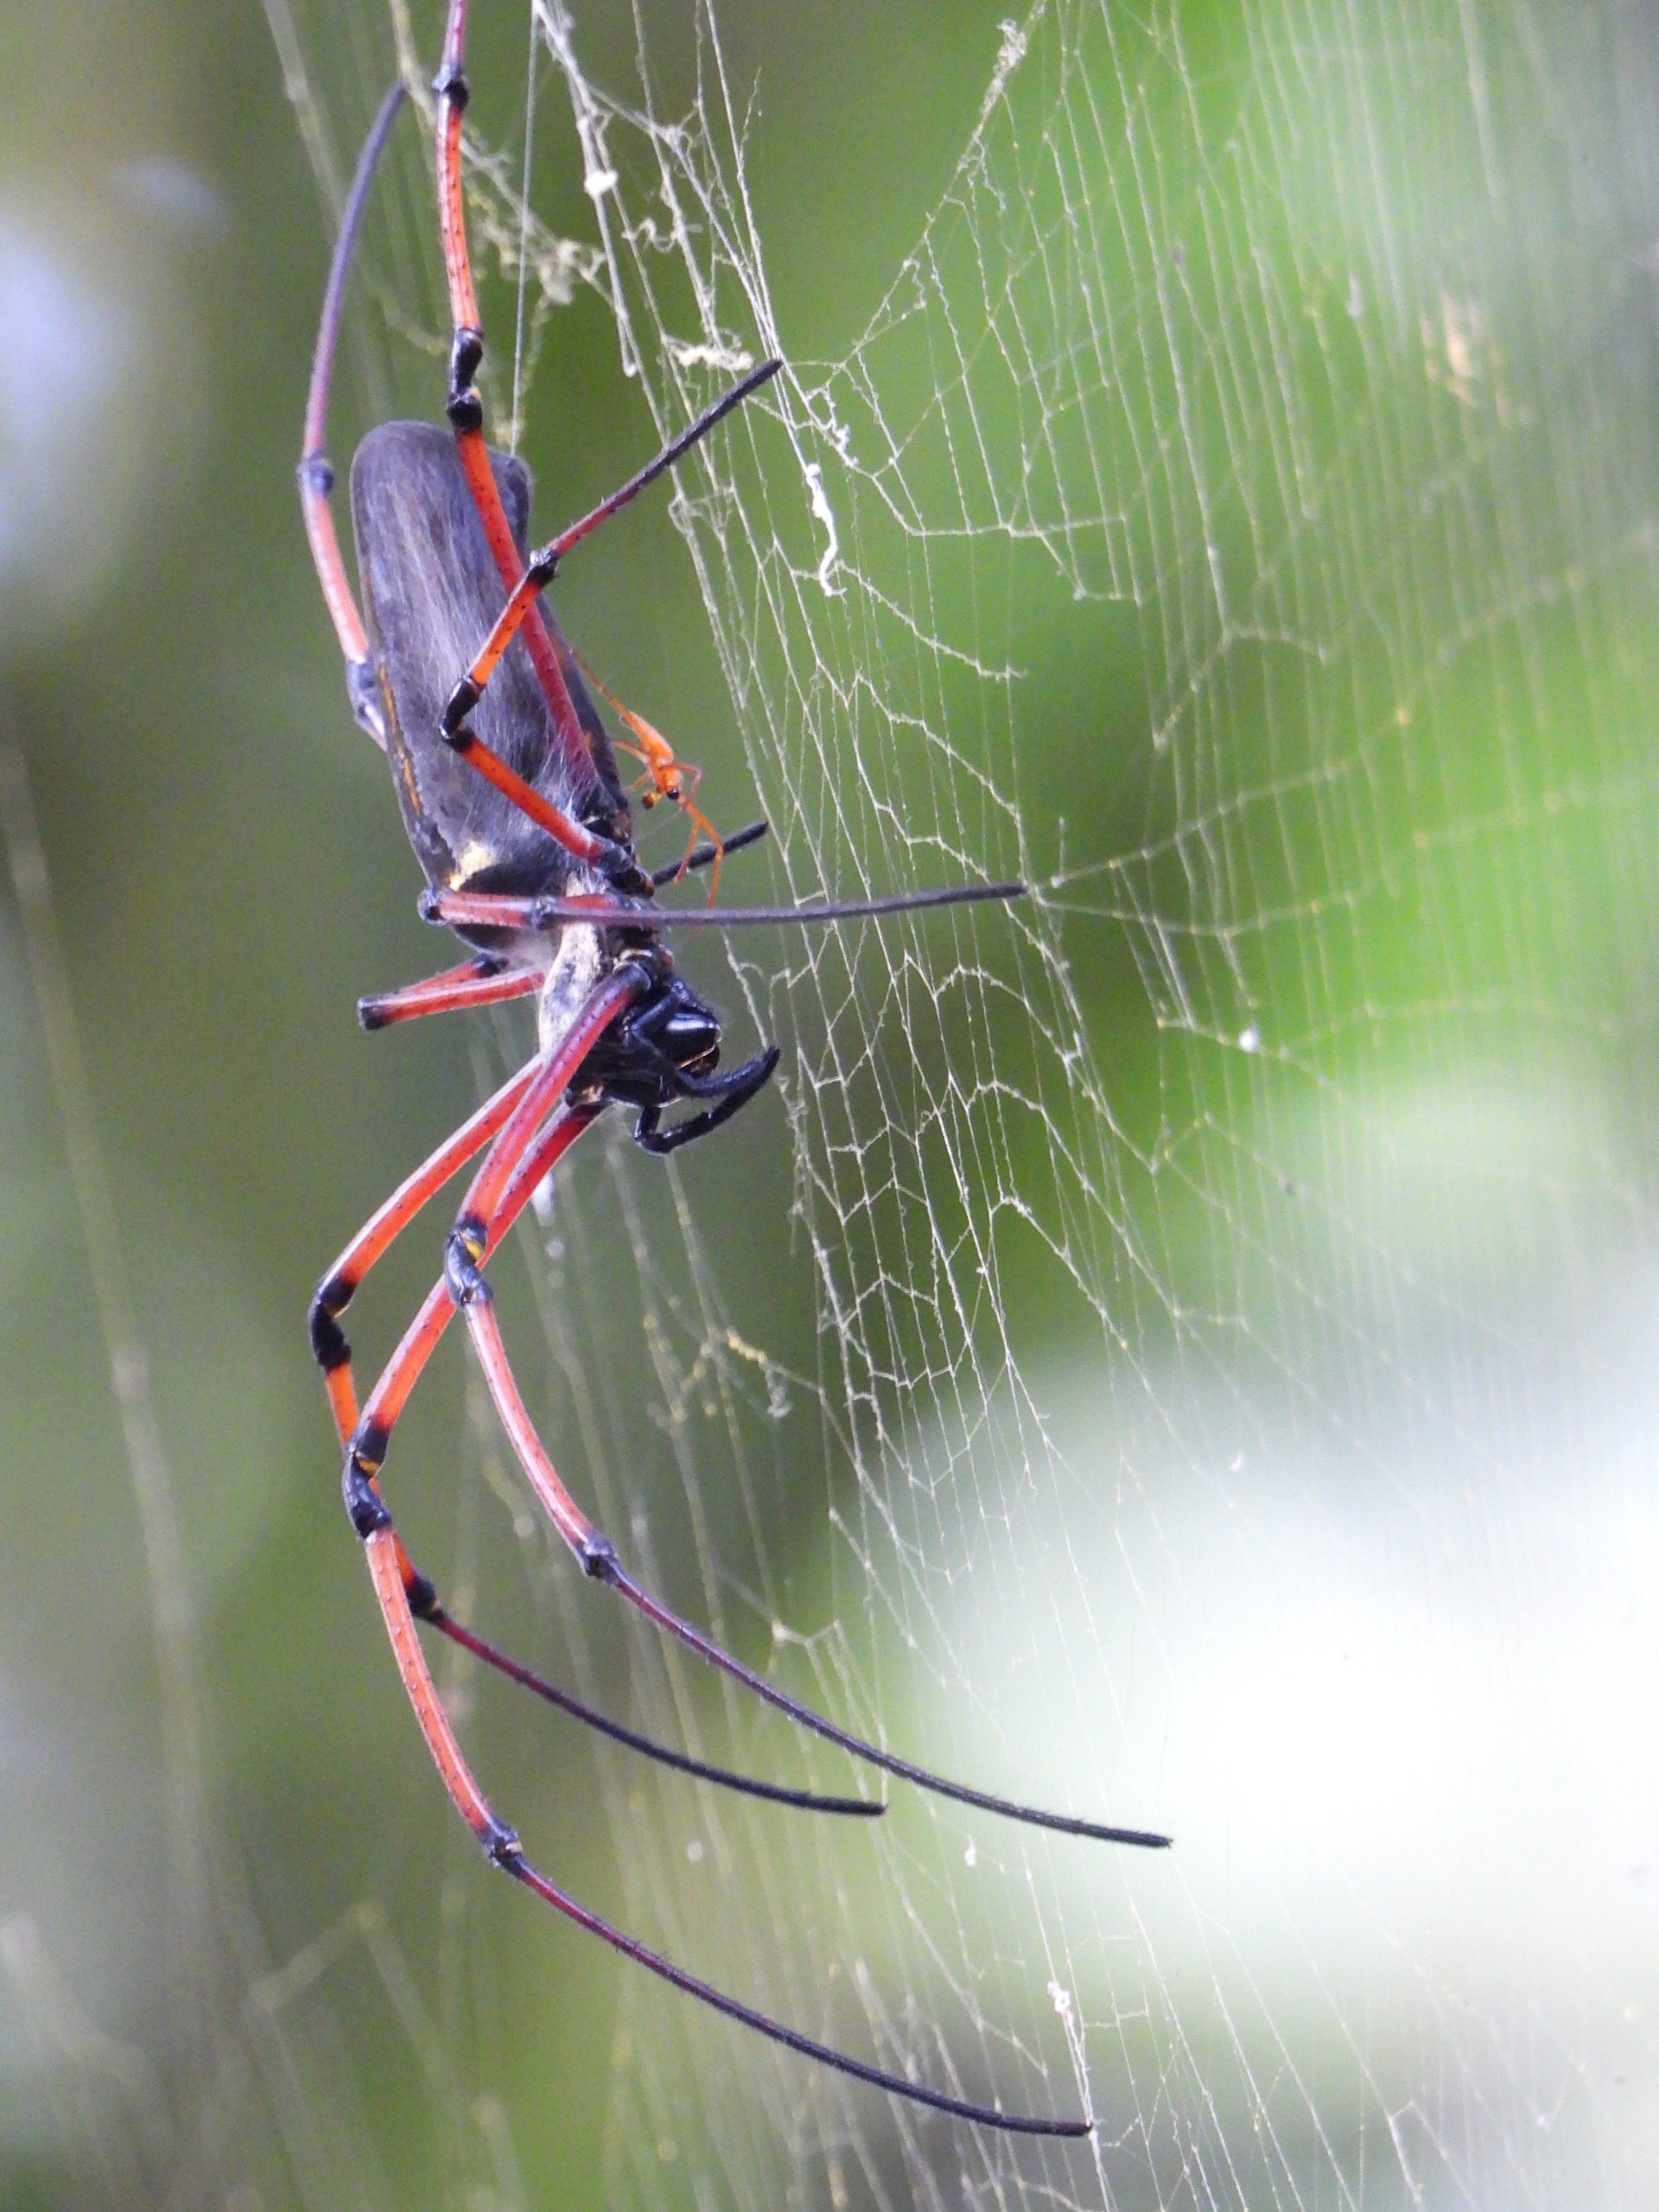 Red spider sitting on web